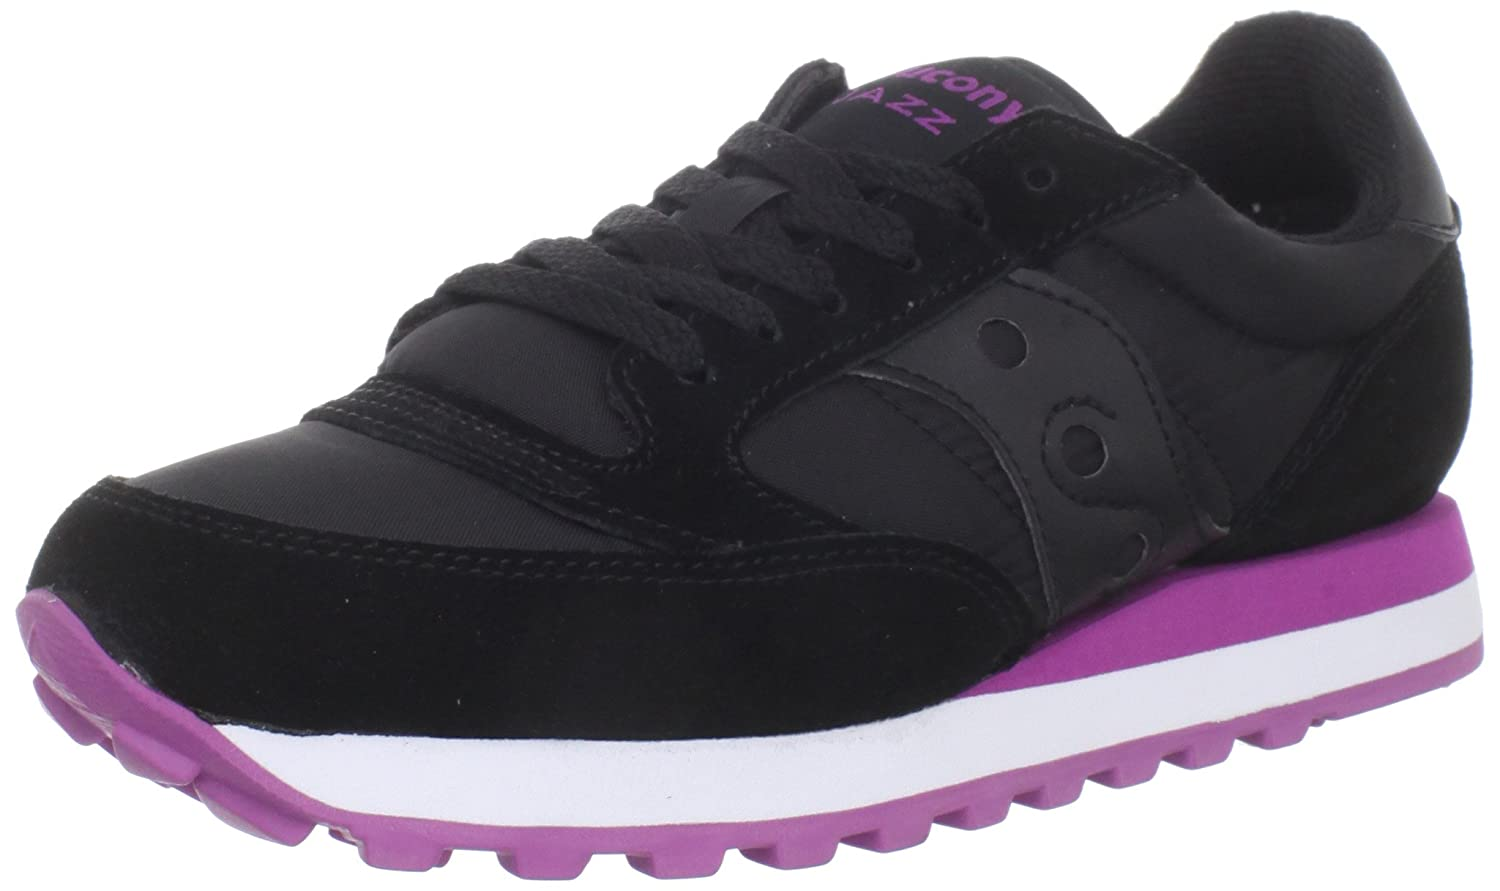 Saucony Originals Women's Jazz Original Sneaker B0073R1QTW 6.5 B(M) US|Black/Pink